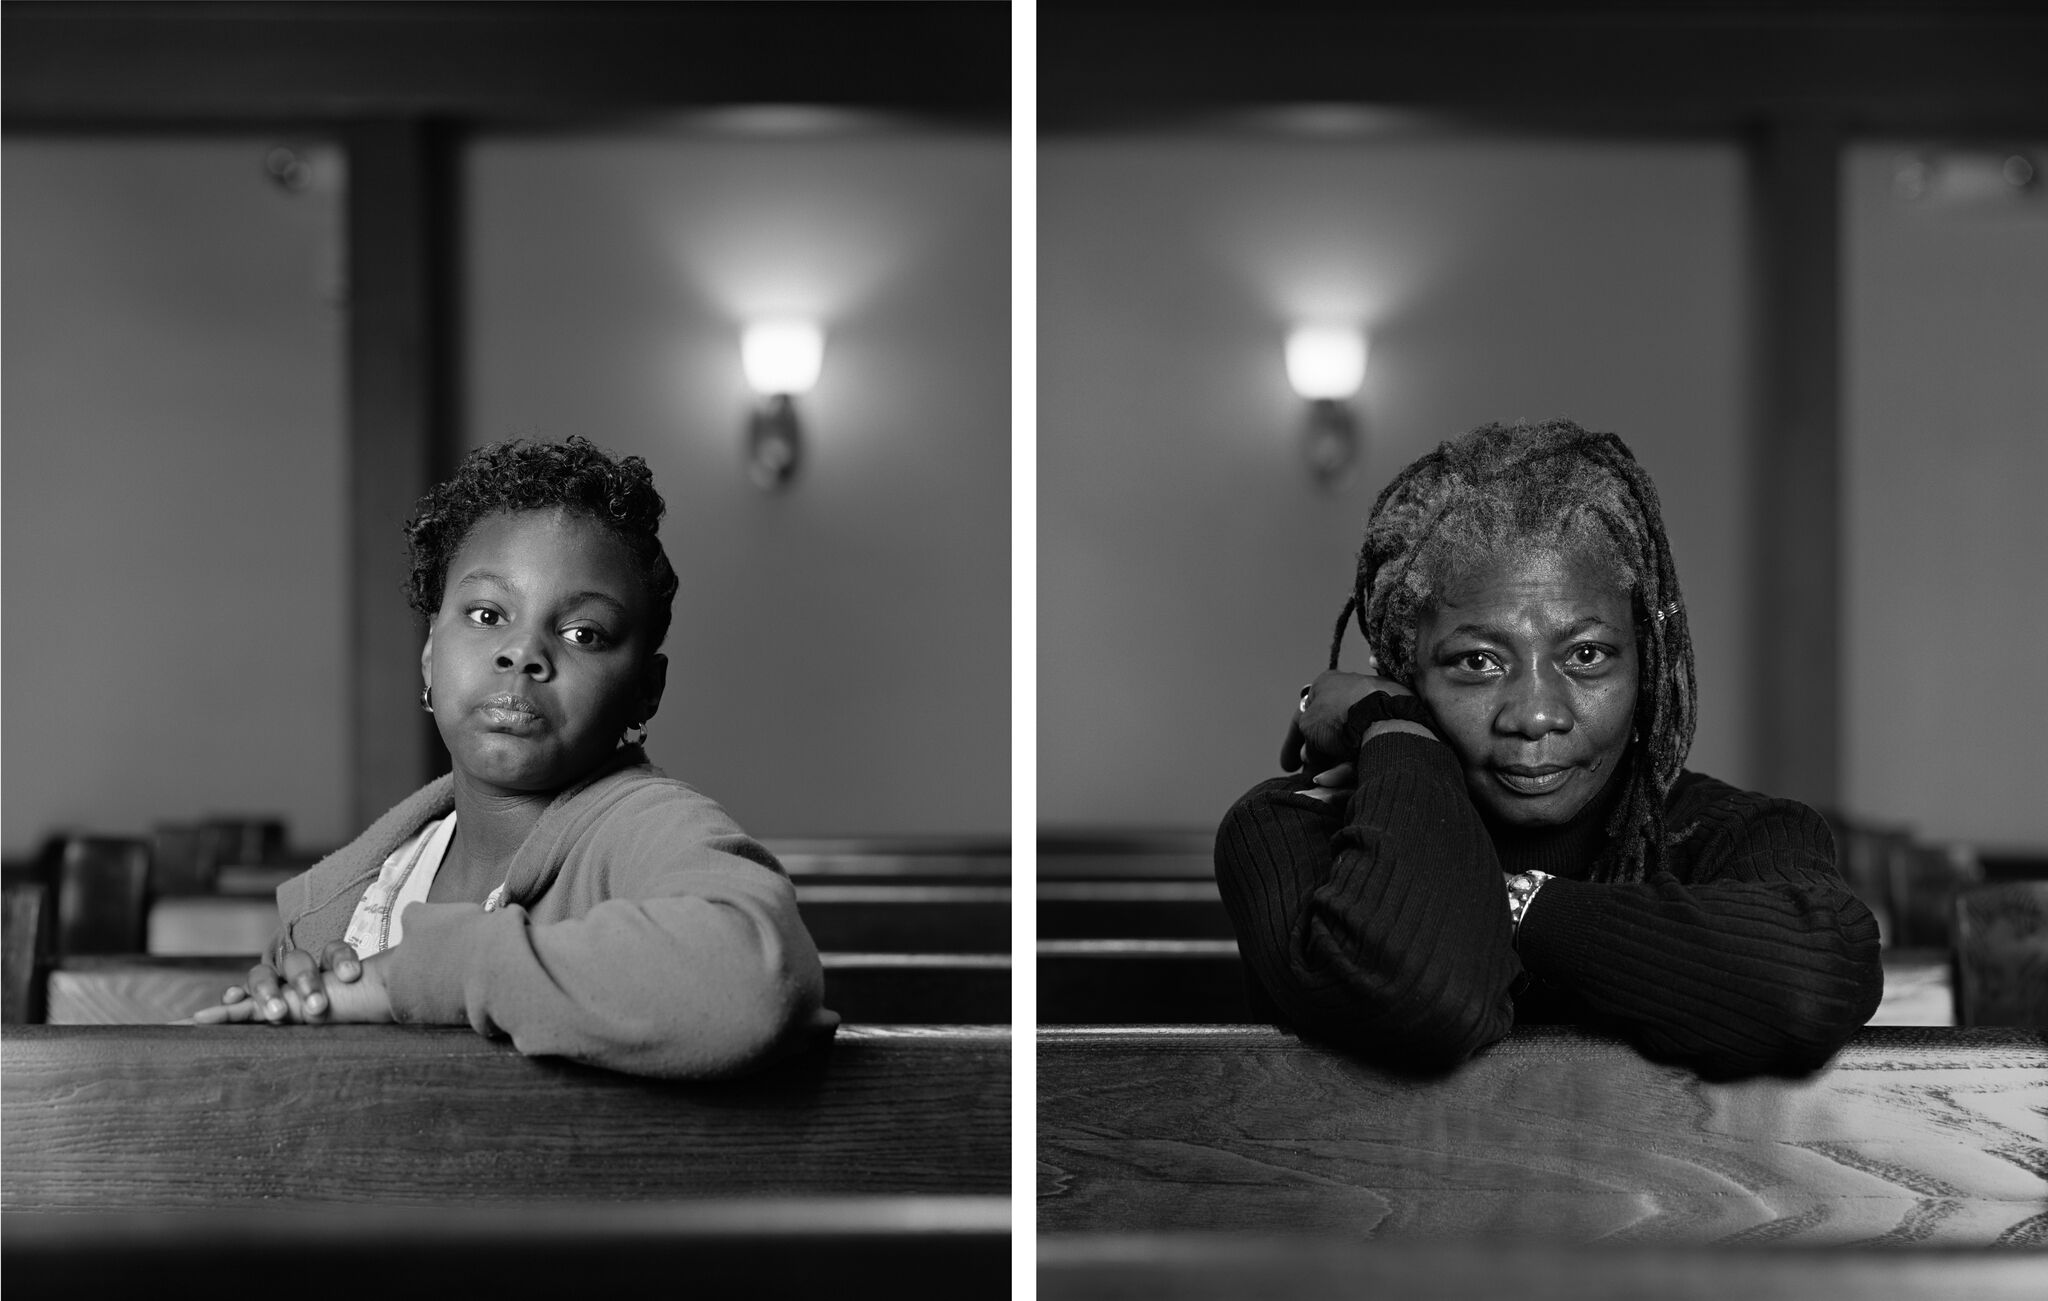 A diptych of photos each depicting a person sitting in a church pew and facing the camera.